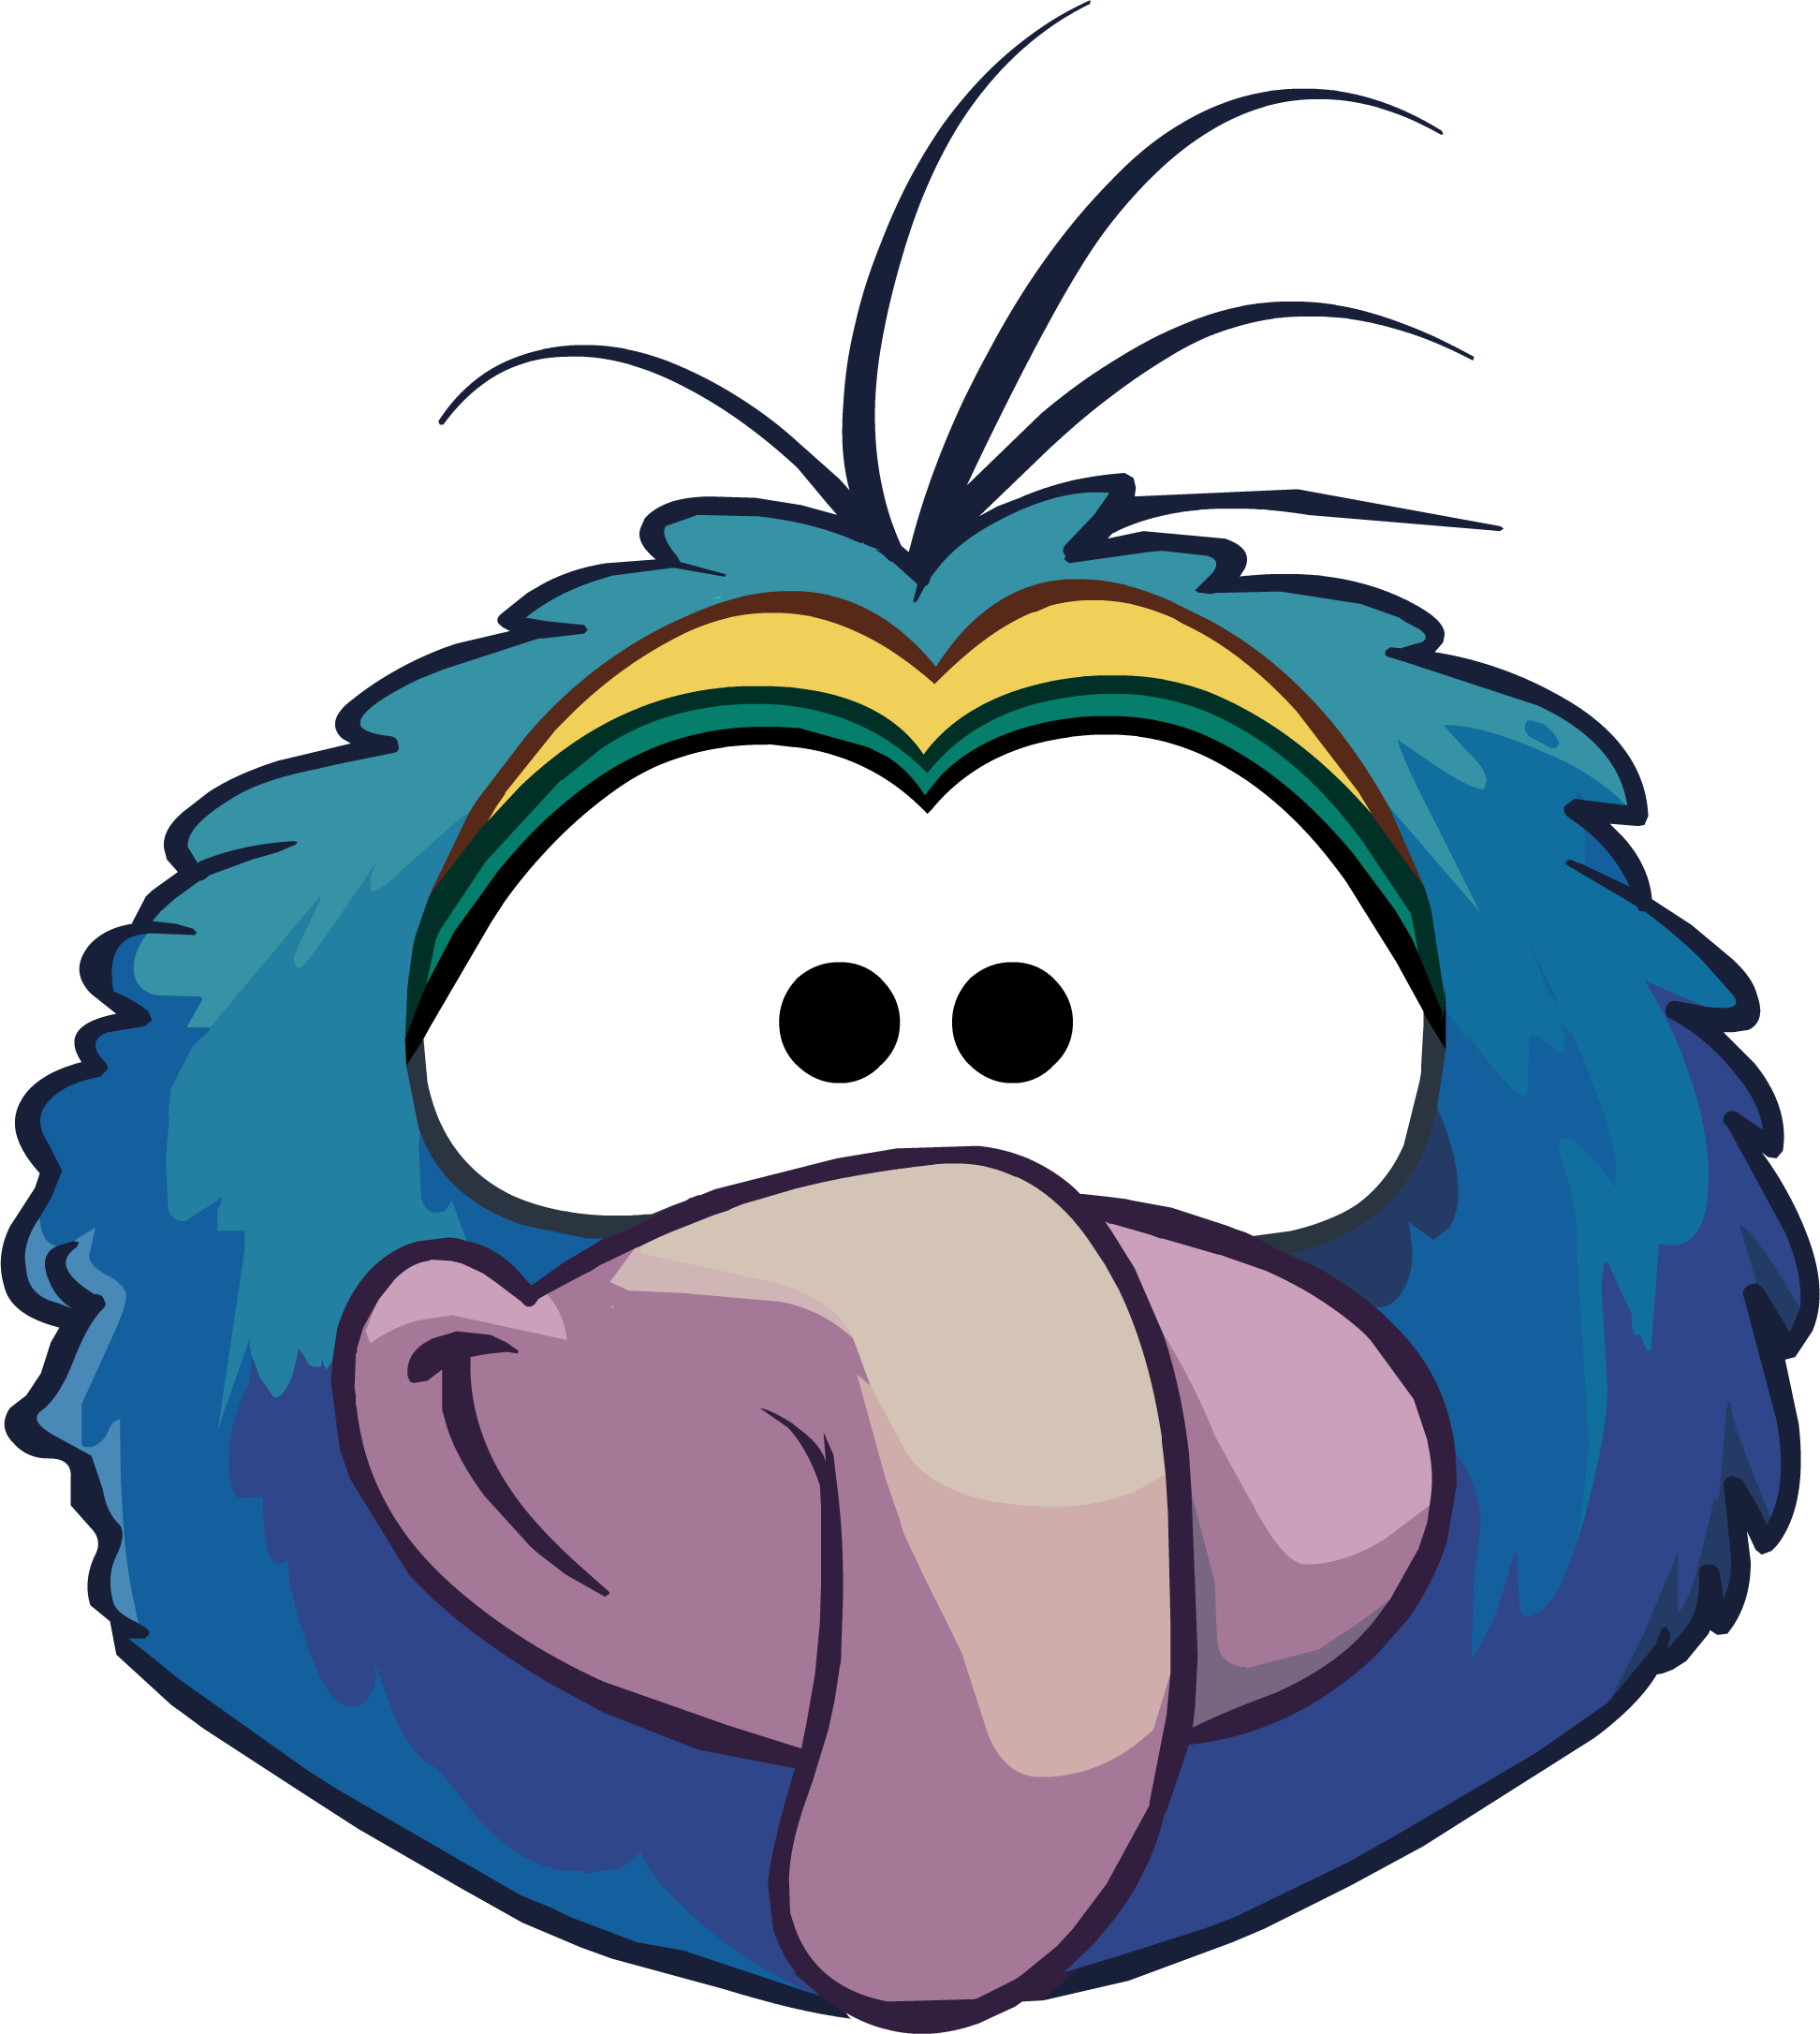 The Great Gonzo Head - Club Penguin Wiki - The free